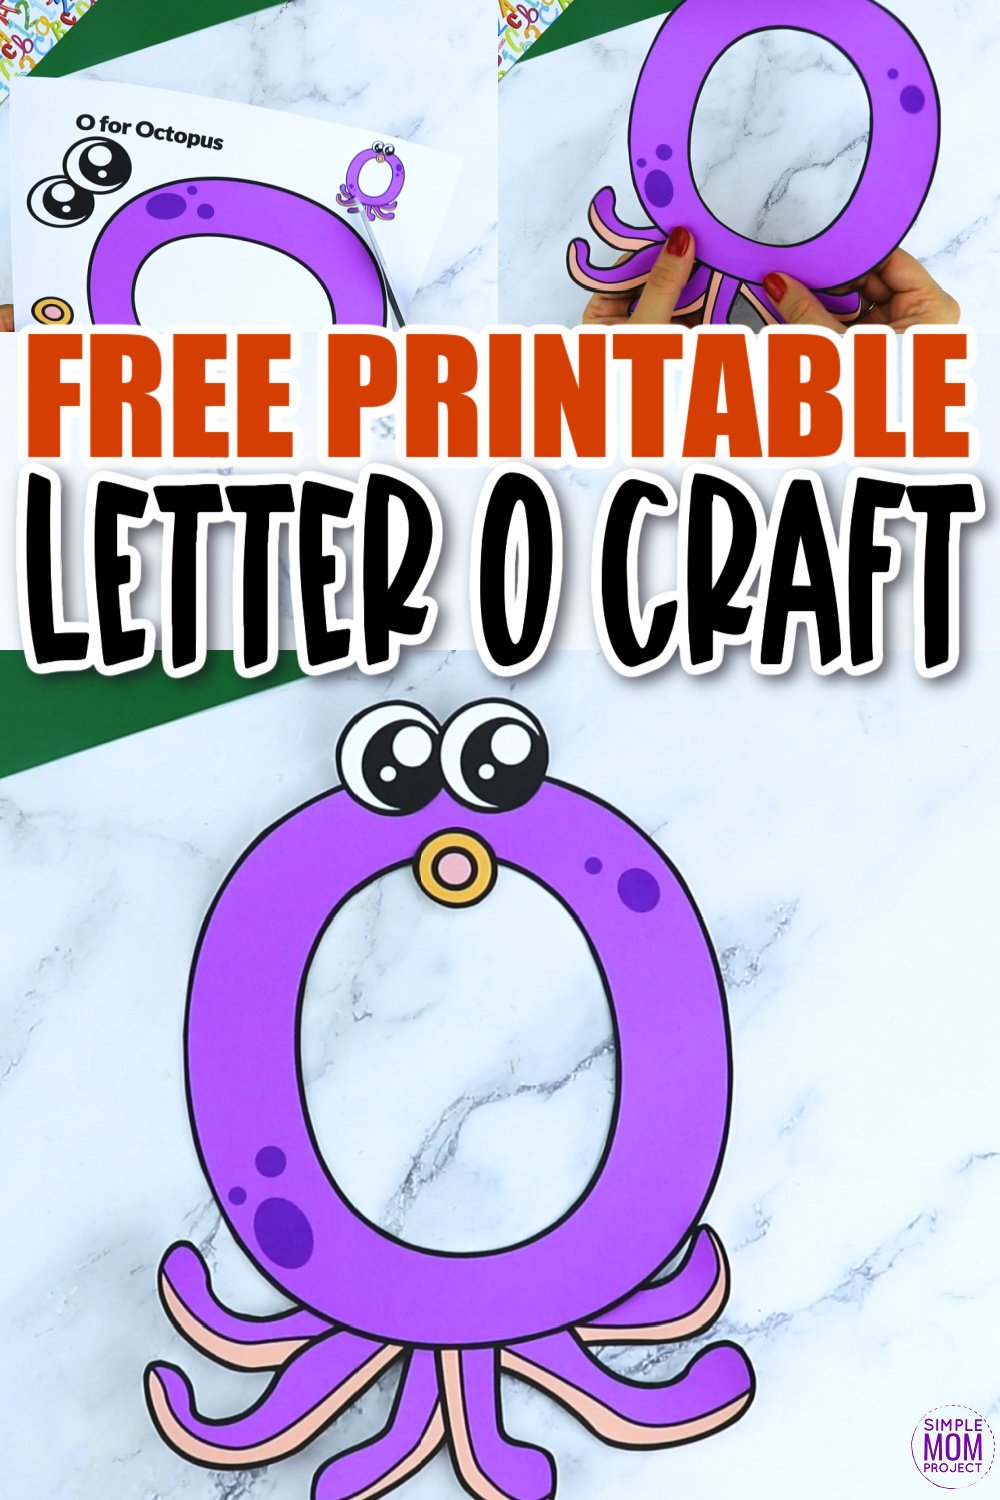 O is for Octopus Printable Craft Octopus Letter O Craft for Kids, preschoolers, toddlers and kindergartners